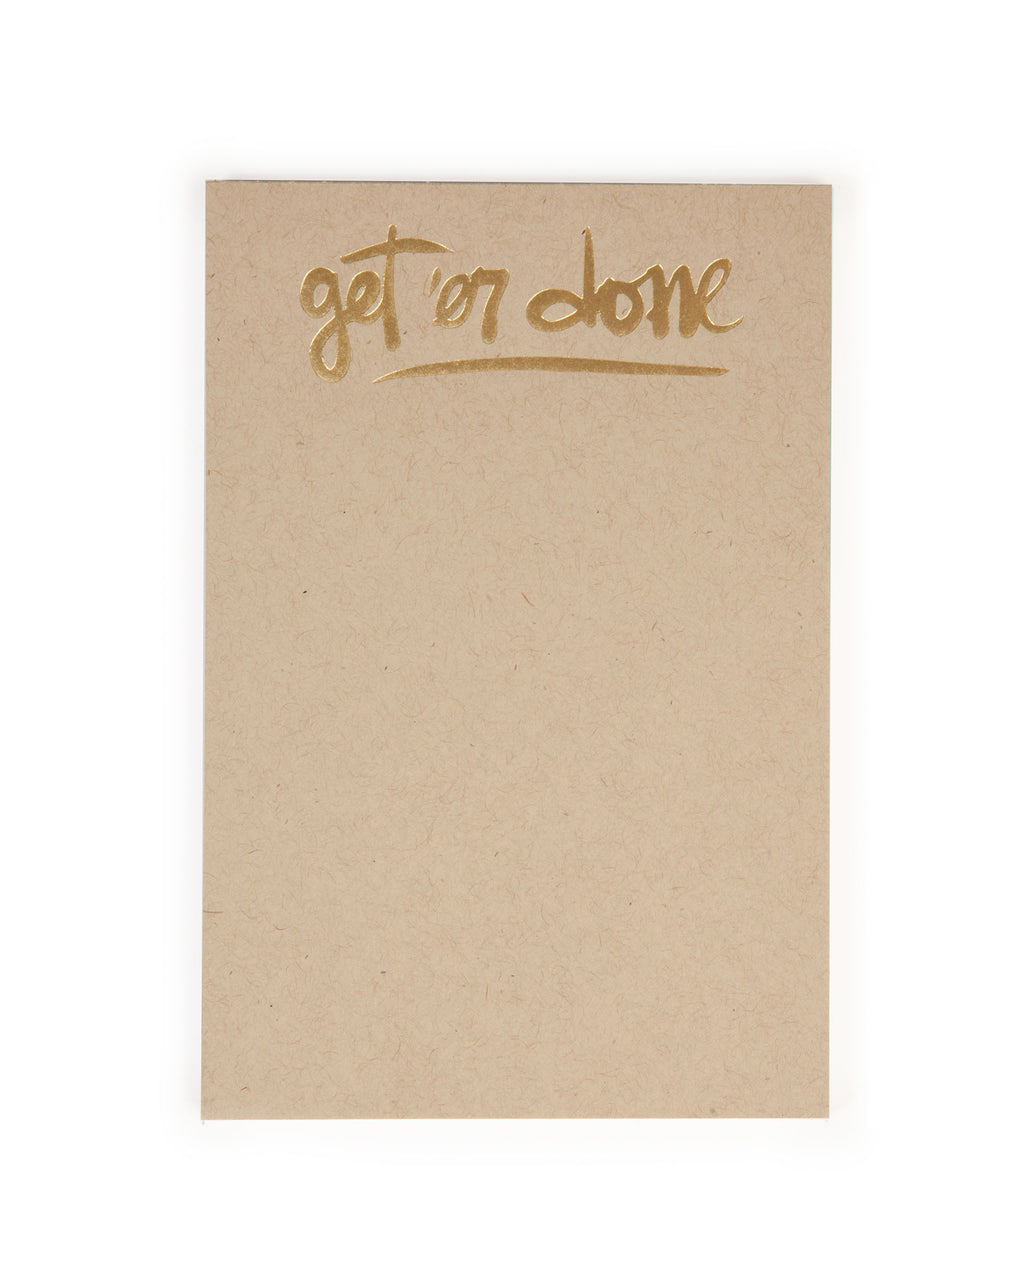 GET'ER DONE - MULTI-COLORED NOTEPAD